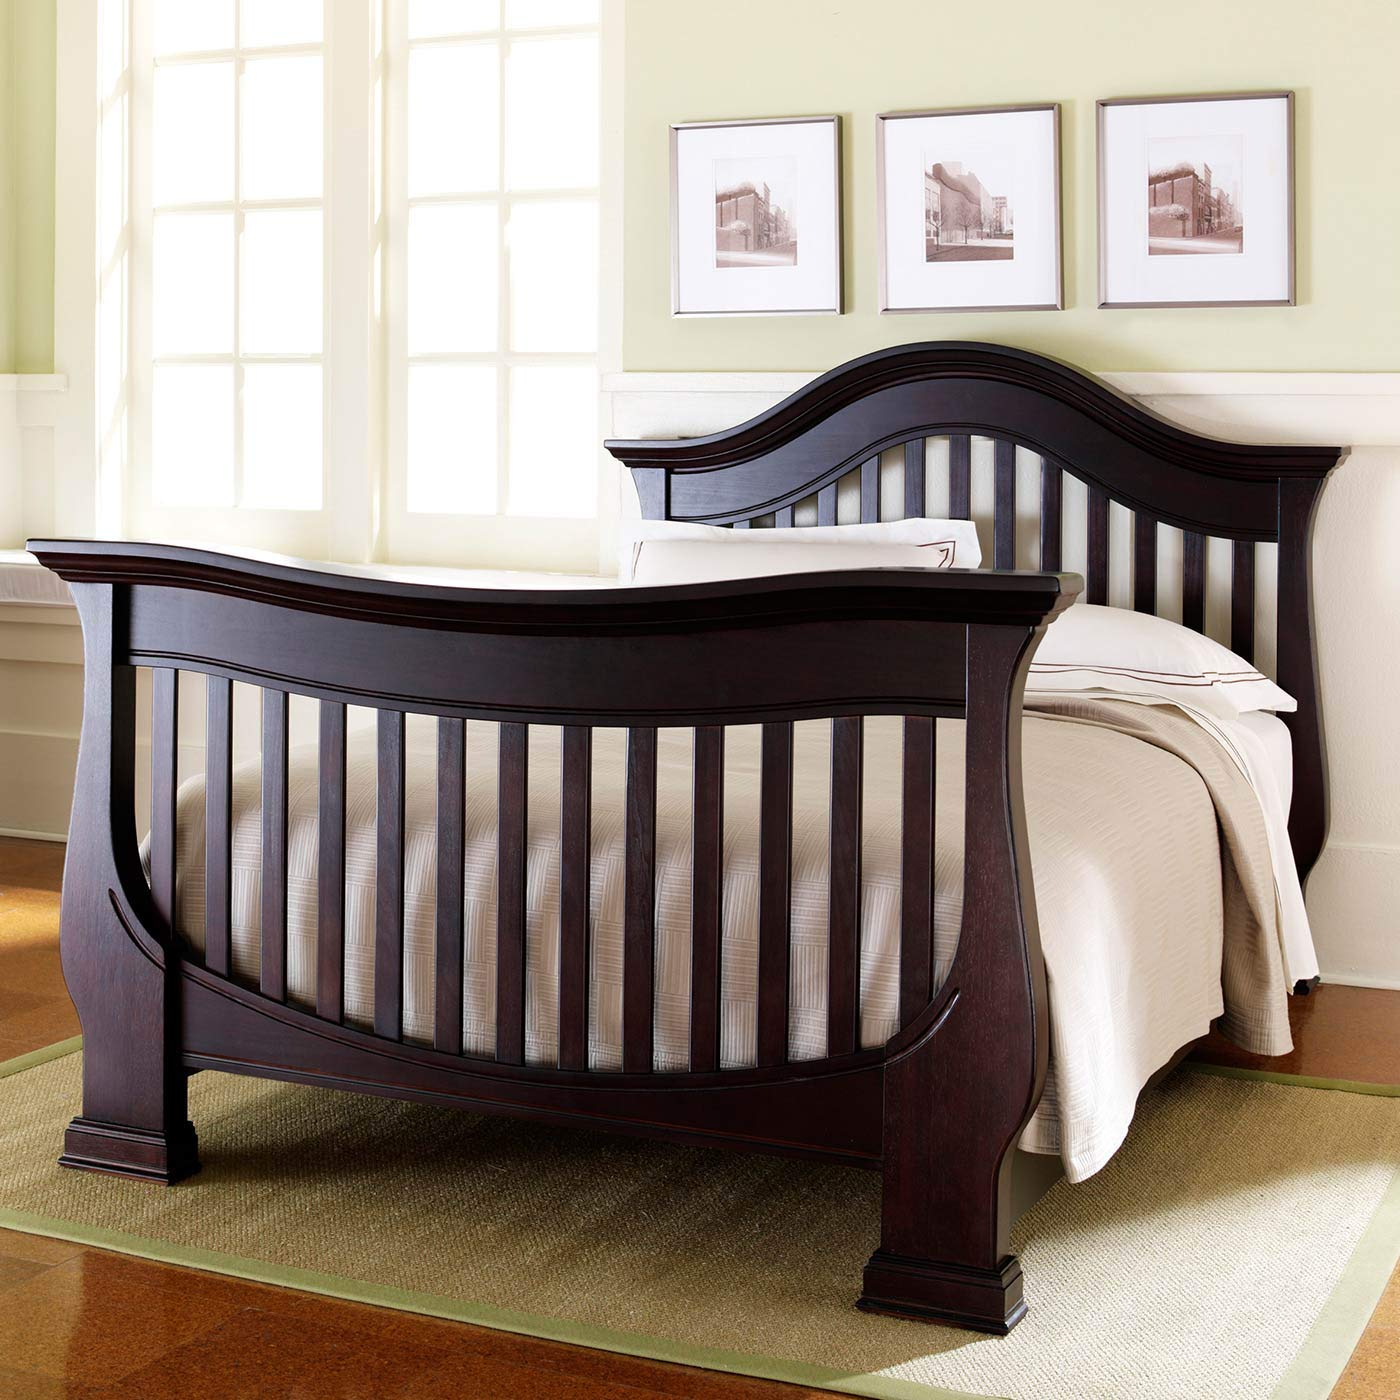 Full Size Conversion Kit Bed Rails for Baby Appleseed Beaumont, Chelmsford, Davenport, Kennedy, Millbury, Stratford Cribs (Espresso) by CC KITS (Image #5)